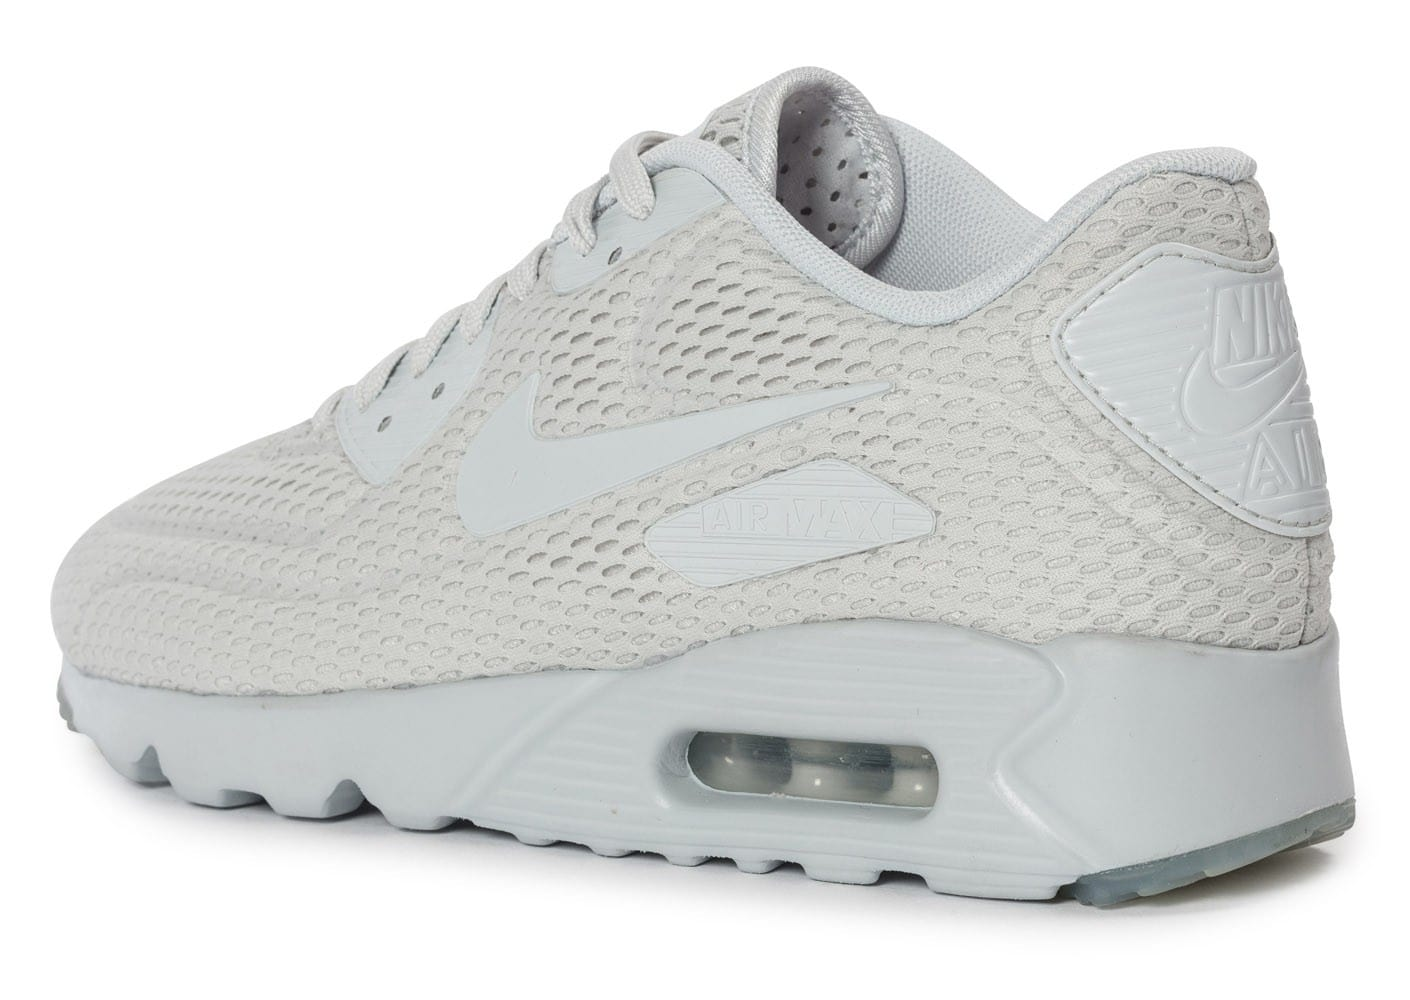 info for 6f525 e537a ... avant Chaussures Nike Air Max 90 Ultra BR Platinum vue arrière ...